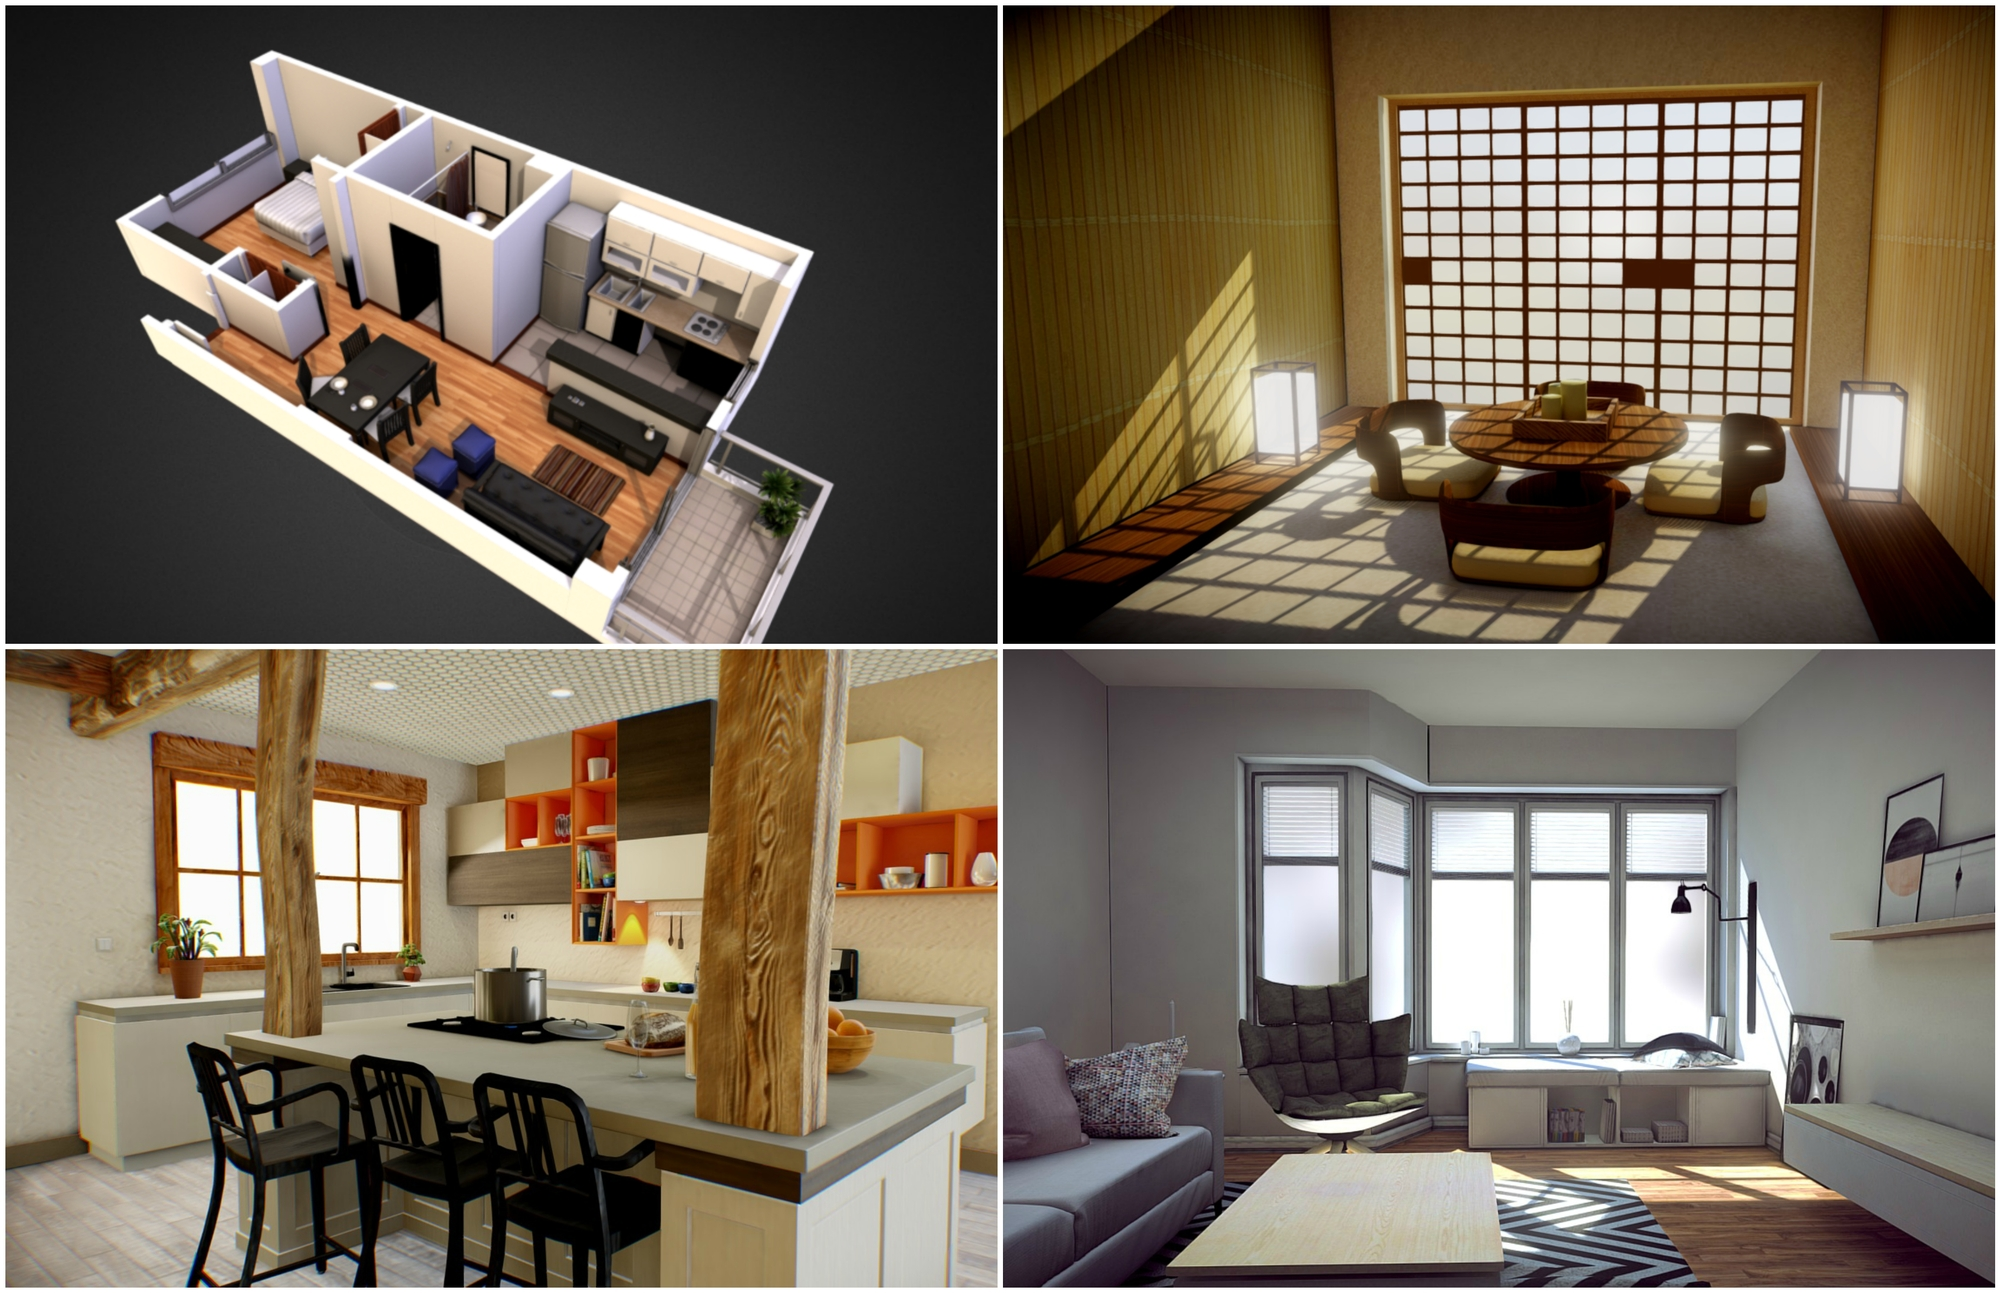 7 Examples of How to Show Off Interiors in Your 3D Models, As Selected by Sketchfab